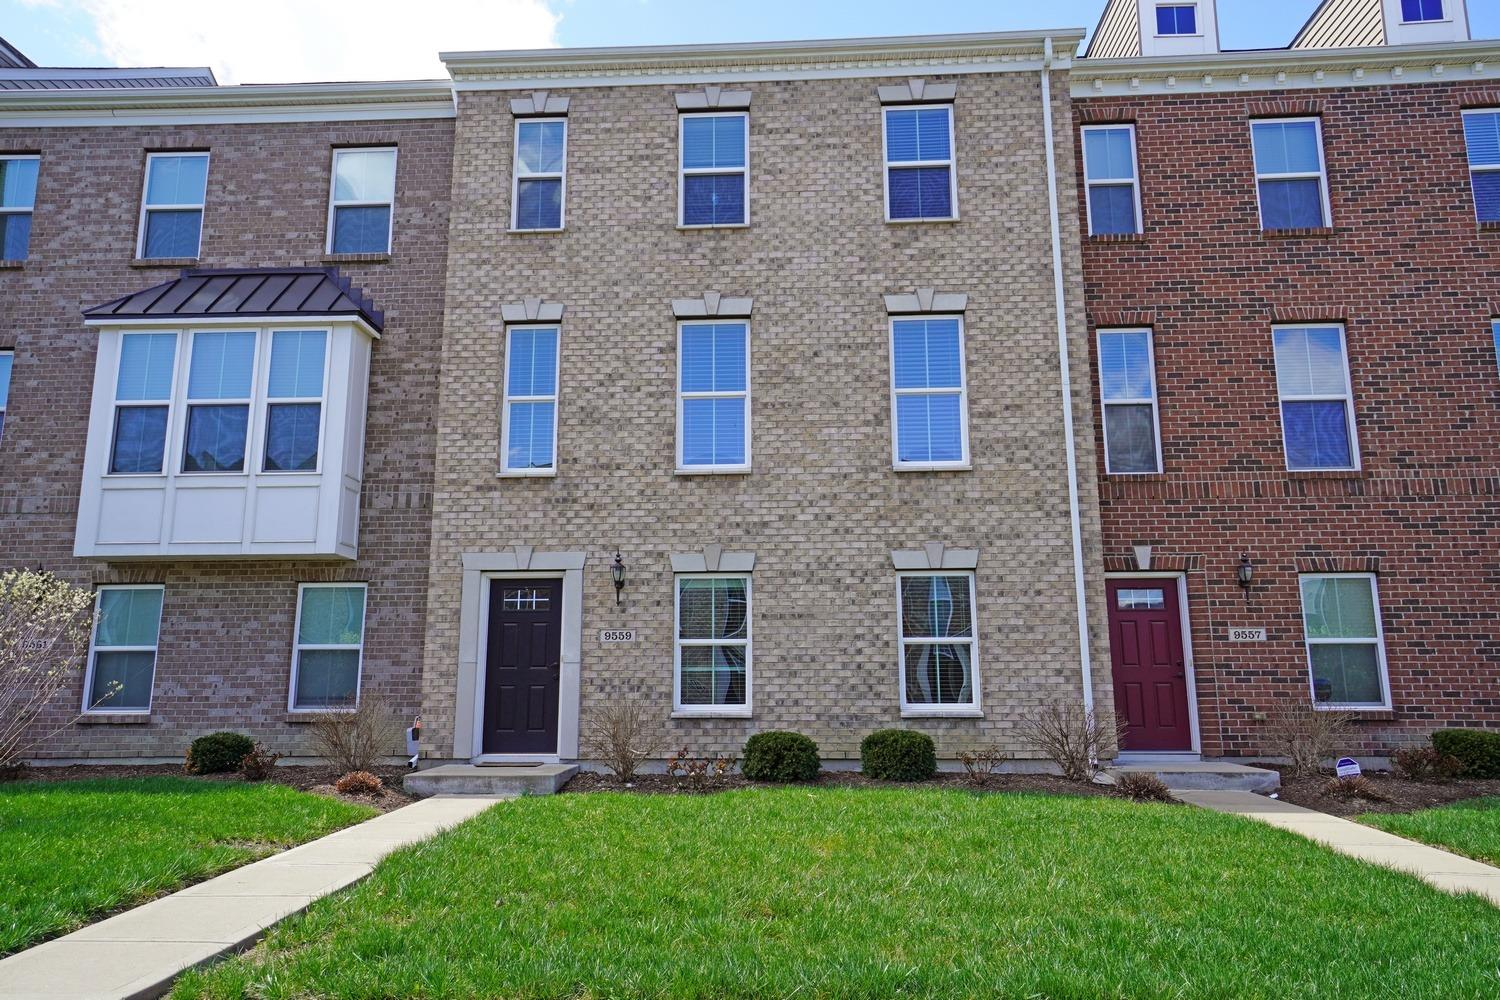 9559 Union Park West Chester Oh 45069 Mls 1681090 Coldwell Banker